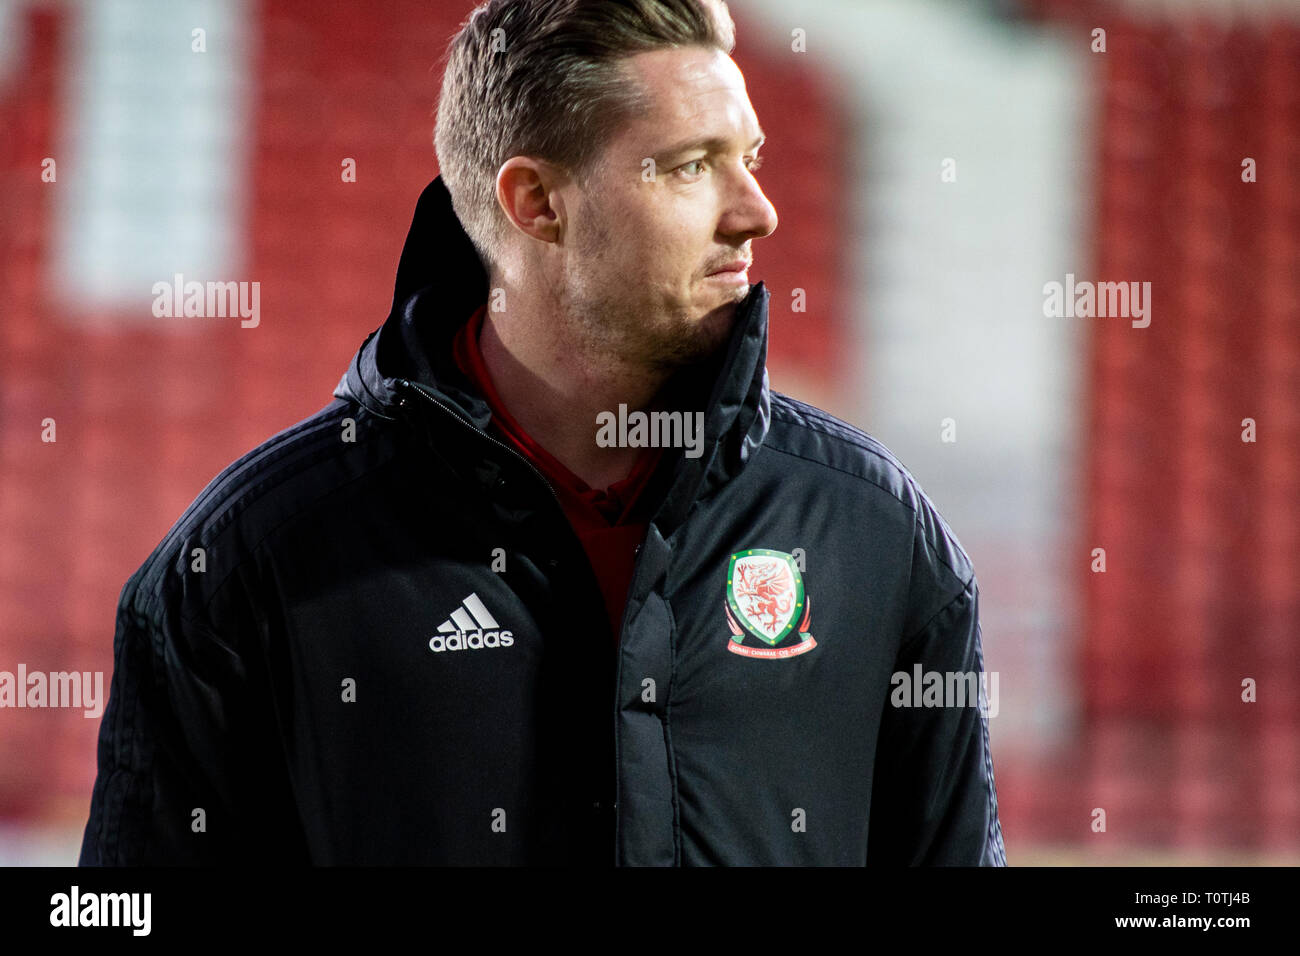 Wayne Hennessey of Wales arrives pre match. Wales v Trinidad & Tobego International friendly at the Racecourse Ground, Wrexham. - Stock Image